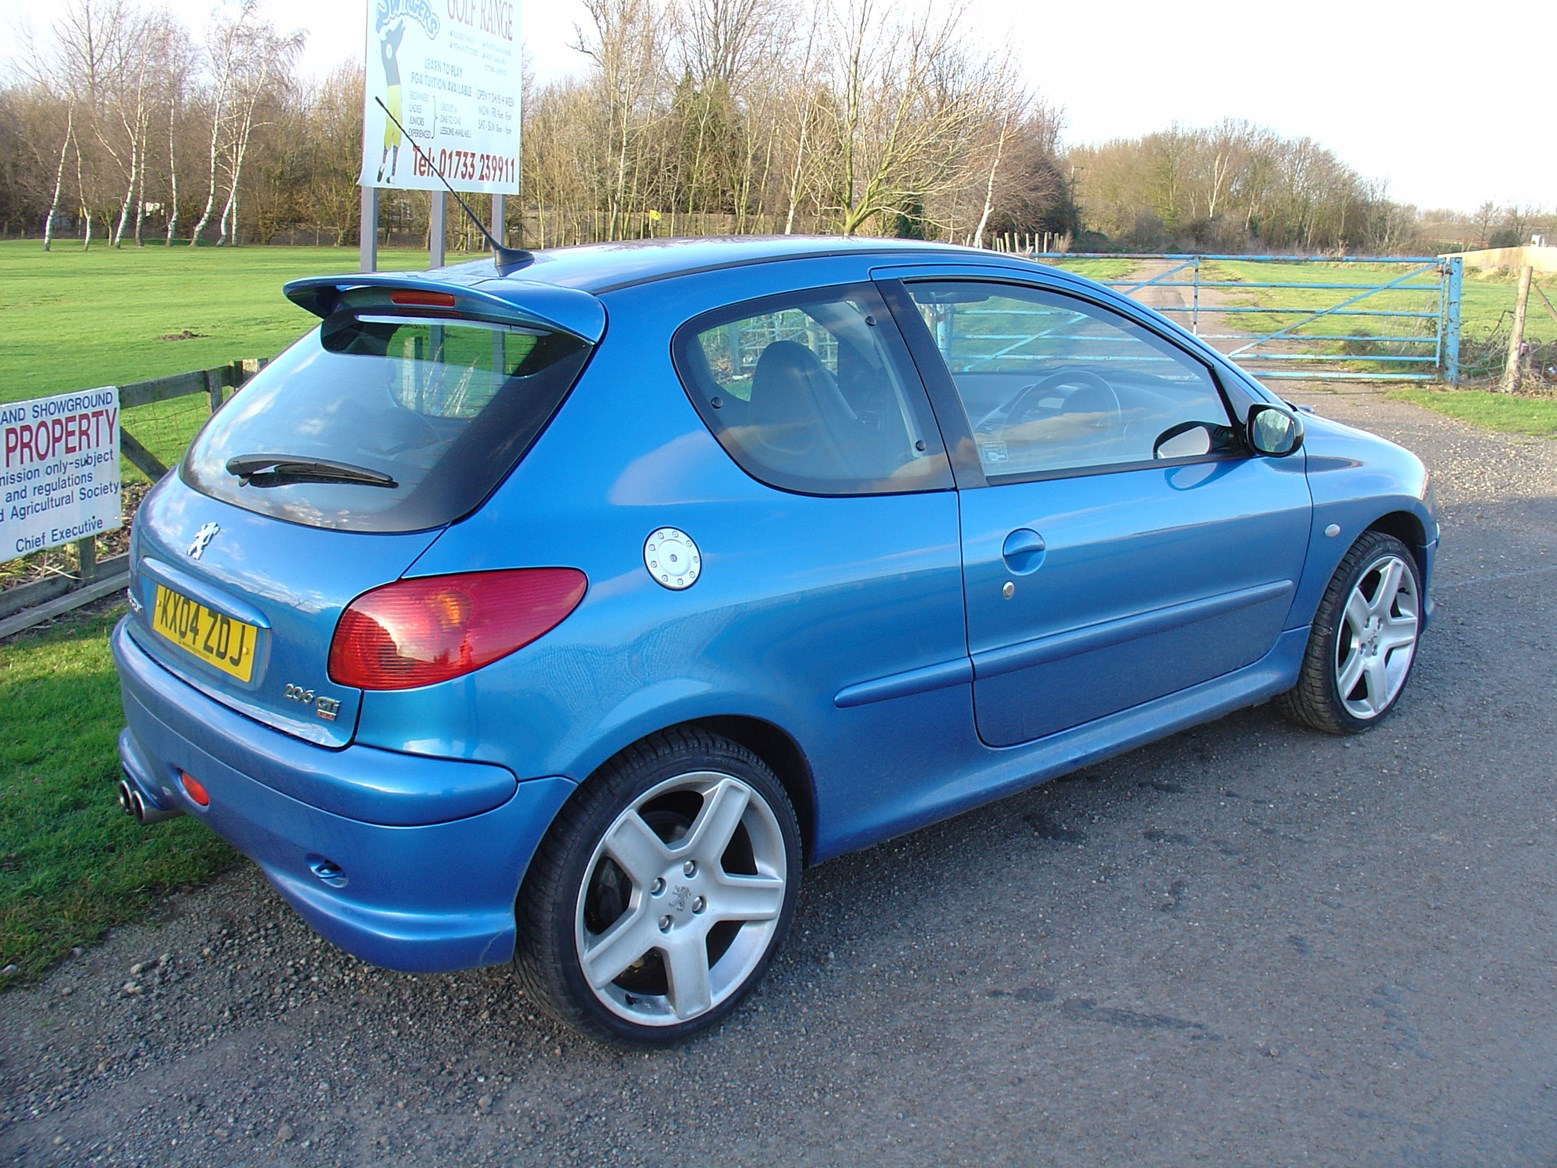 Used Peugeot 206 GTi (1999 - 2006) Review